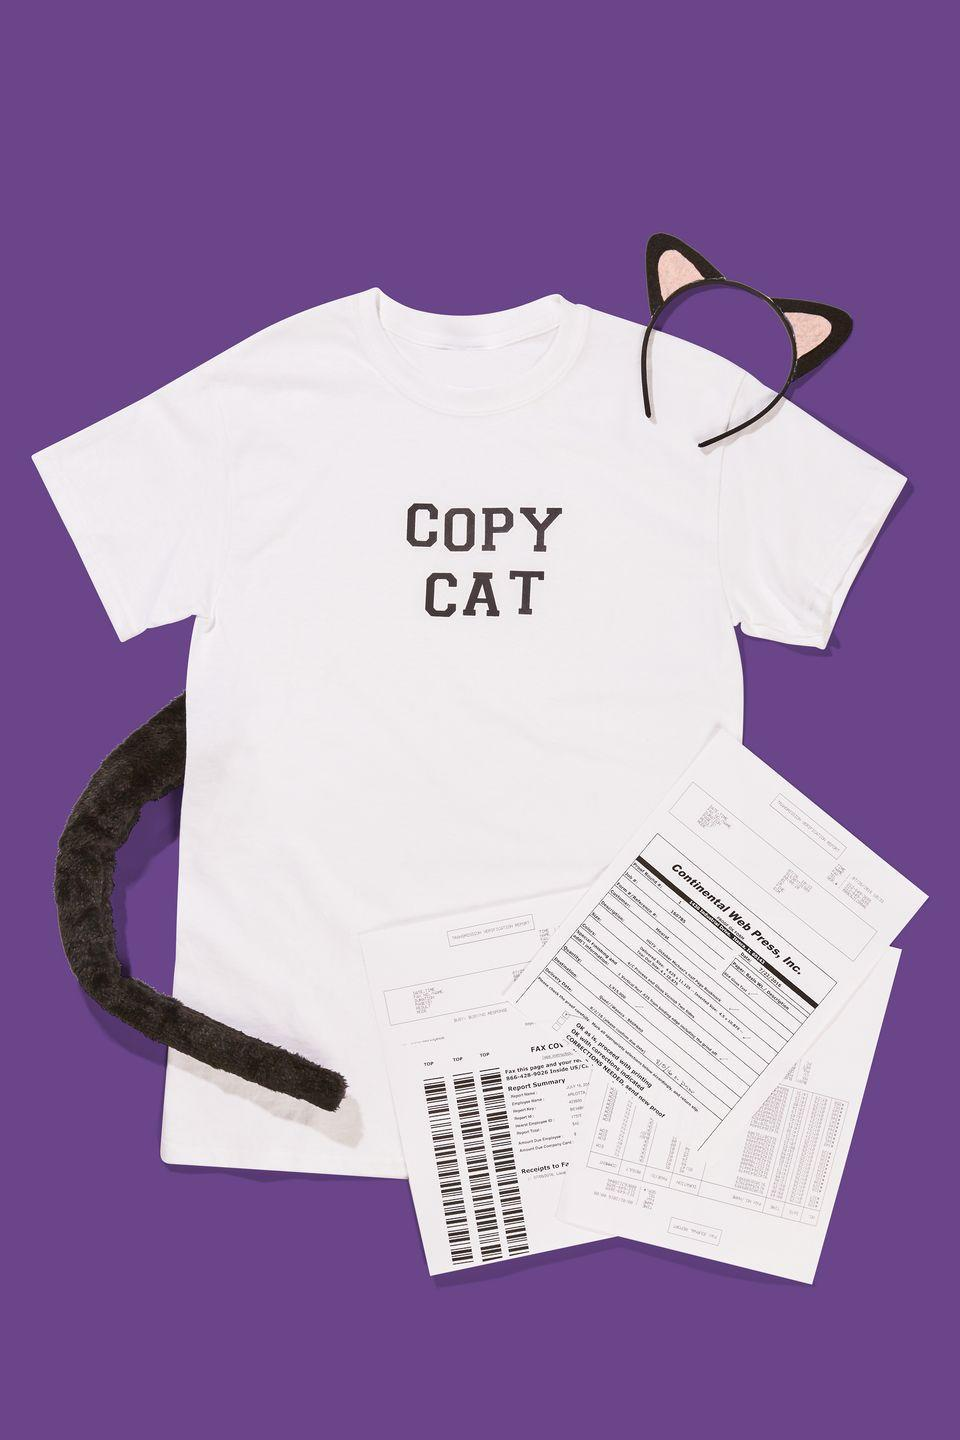 """<p>Attach black adhesive letters to spell out """"Copy Cat"""" on a white t-shirt. Add cat ears and a tail, grab random work papers (preferably unimportant ones) to carry around, and try not to purr too loudly in anyone's ear. </p><p><a class=""""link rapid-noclick-resp"""" href=""""https://www.amazon.com/Creavention-Cosplay-headband-accessories-parties/dp/B01I4FUU0C?tag=syn-yahoo-20&ascsubtag=%5Bartid%7C10070.g.490%5Bsrc%7Cyahoo-us"""" rel=""""nofollow noopener"""" target=""""_blank"""" data-ylk=""""slk:CAT ACCESSORIES""""><strong>CAT ACCESSORIES</strong> </a></p>"""